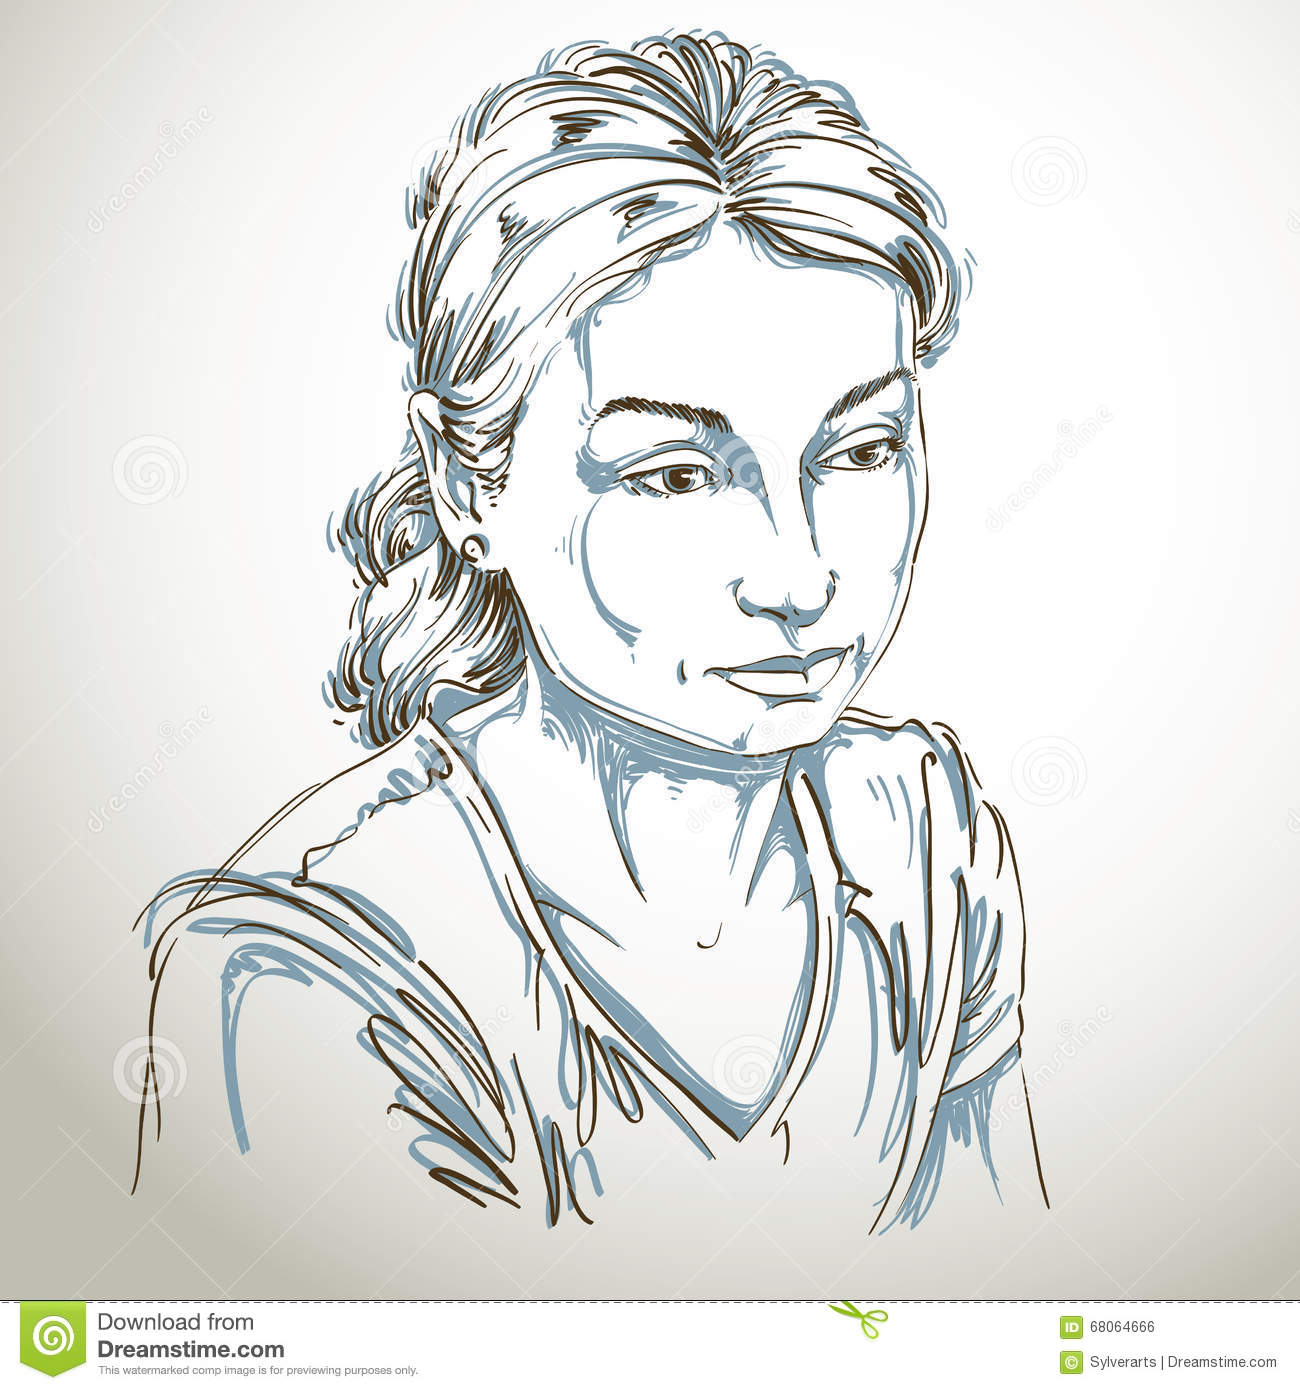 Vector Portrait Of Sad Attractive Woman, Illustration Of Good-looking  Sorrowful Female. Person Emotional Face Expression. Stock Vector -  Illustration of meditative, face: 68064666